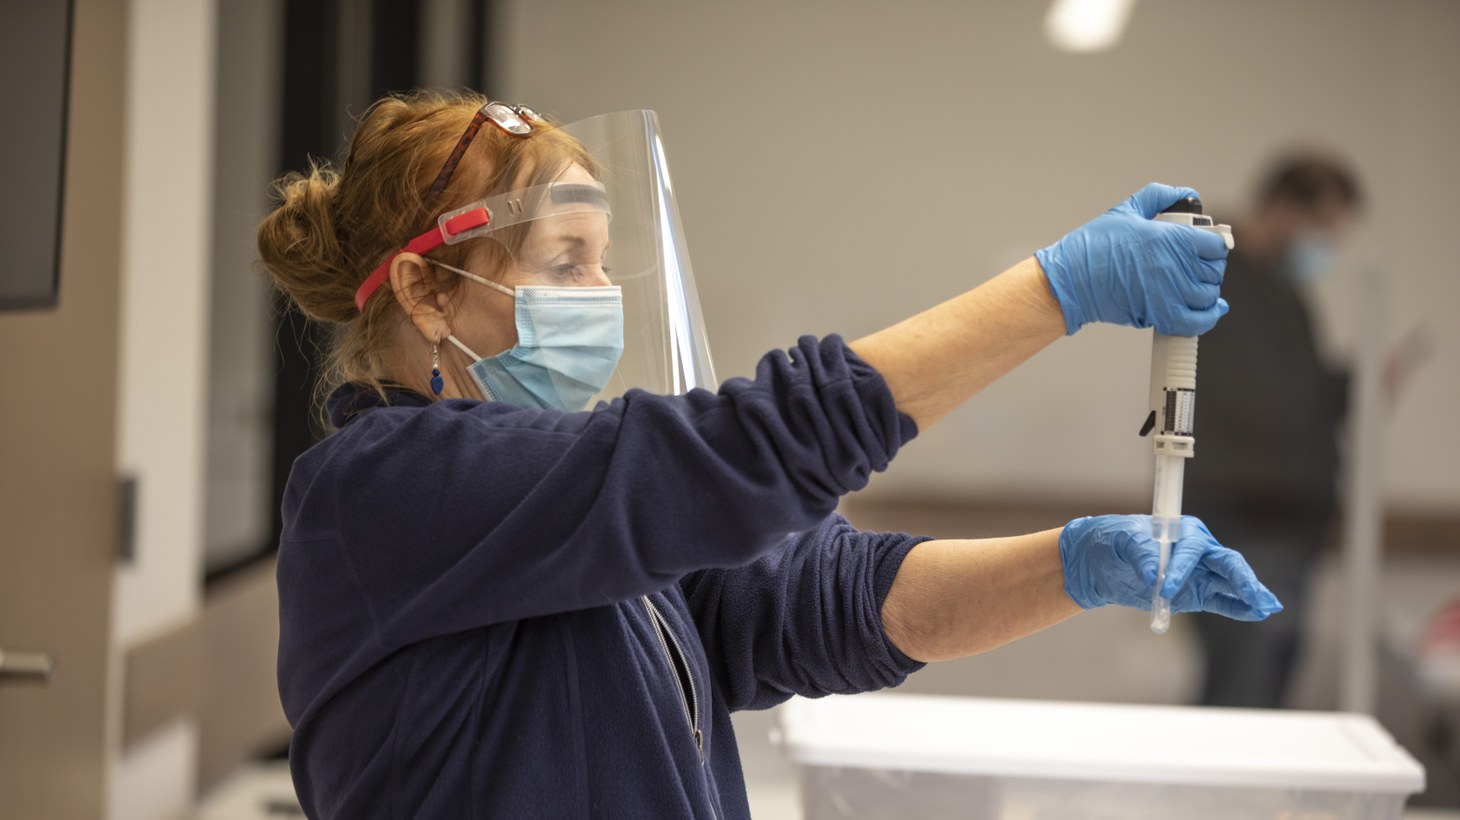 A worker holds a medical instrument inside Veterans Memorial Center in Davis, California, where UC Davis staff, students, and residents of the area received free COVID-19 tests, as part of the Healthy Davis Together project. January 28, 2021.